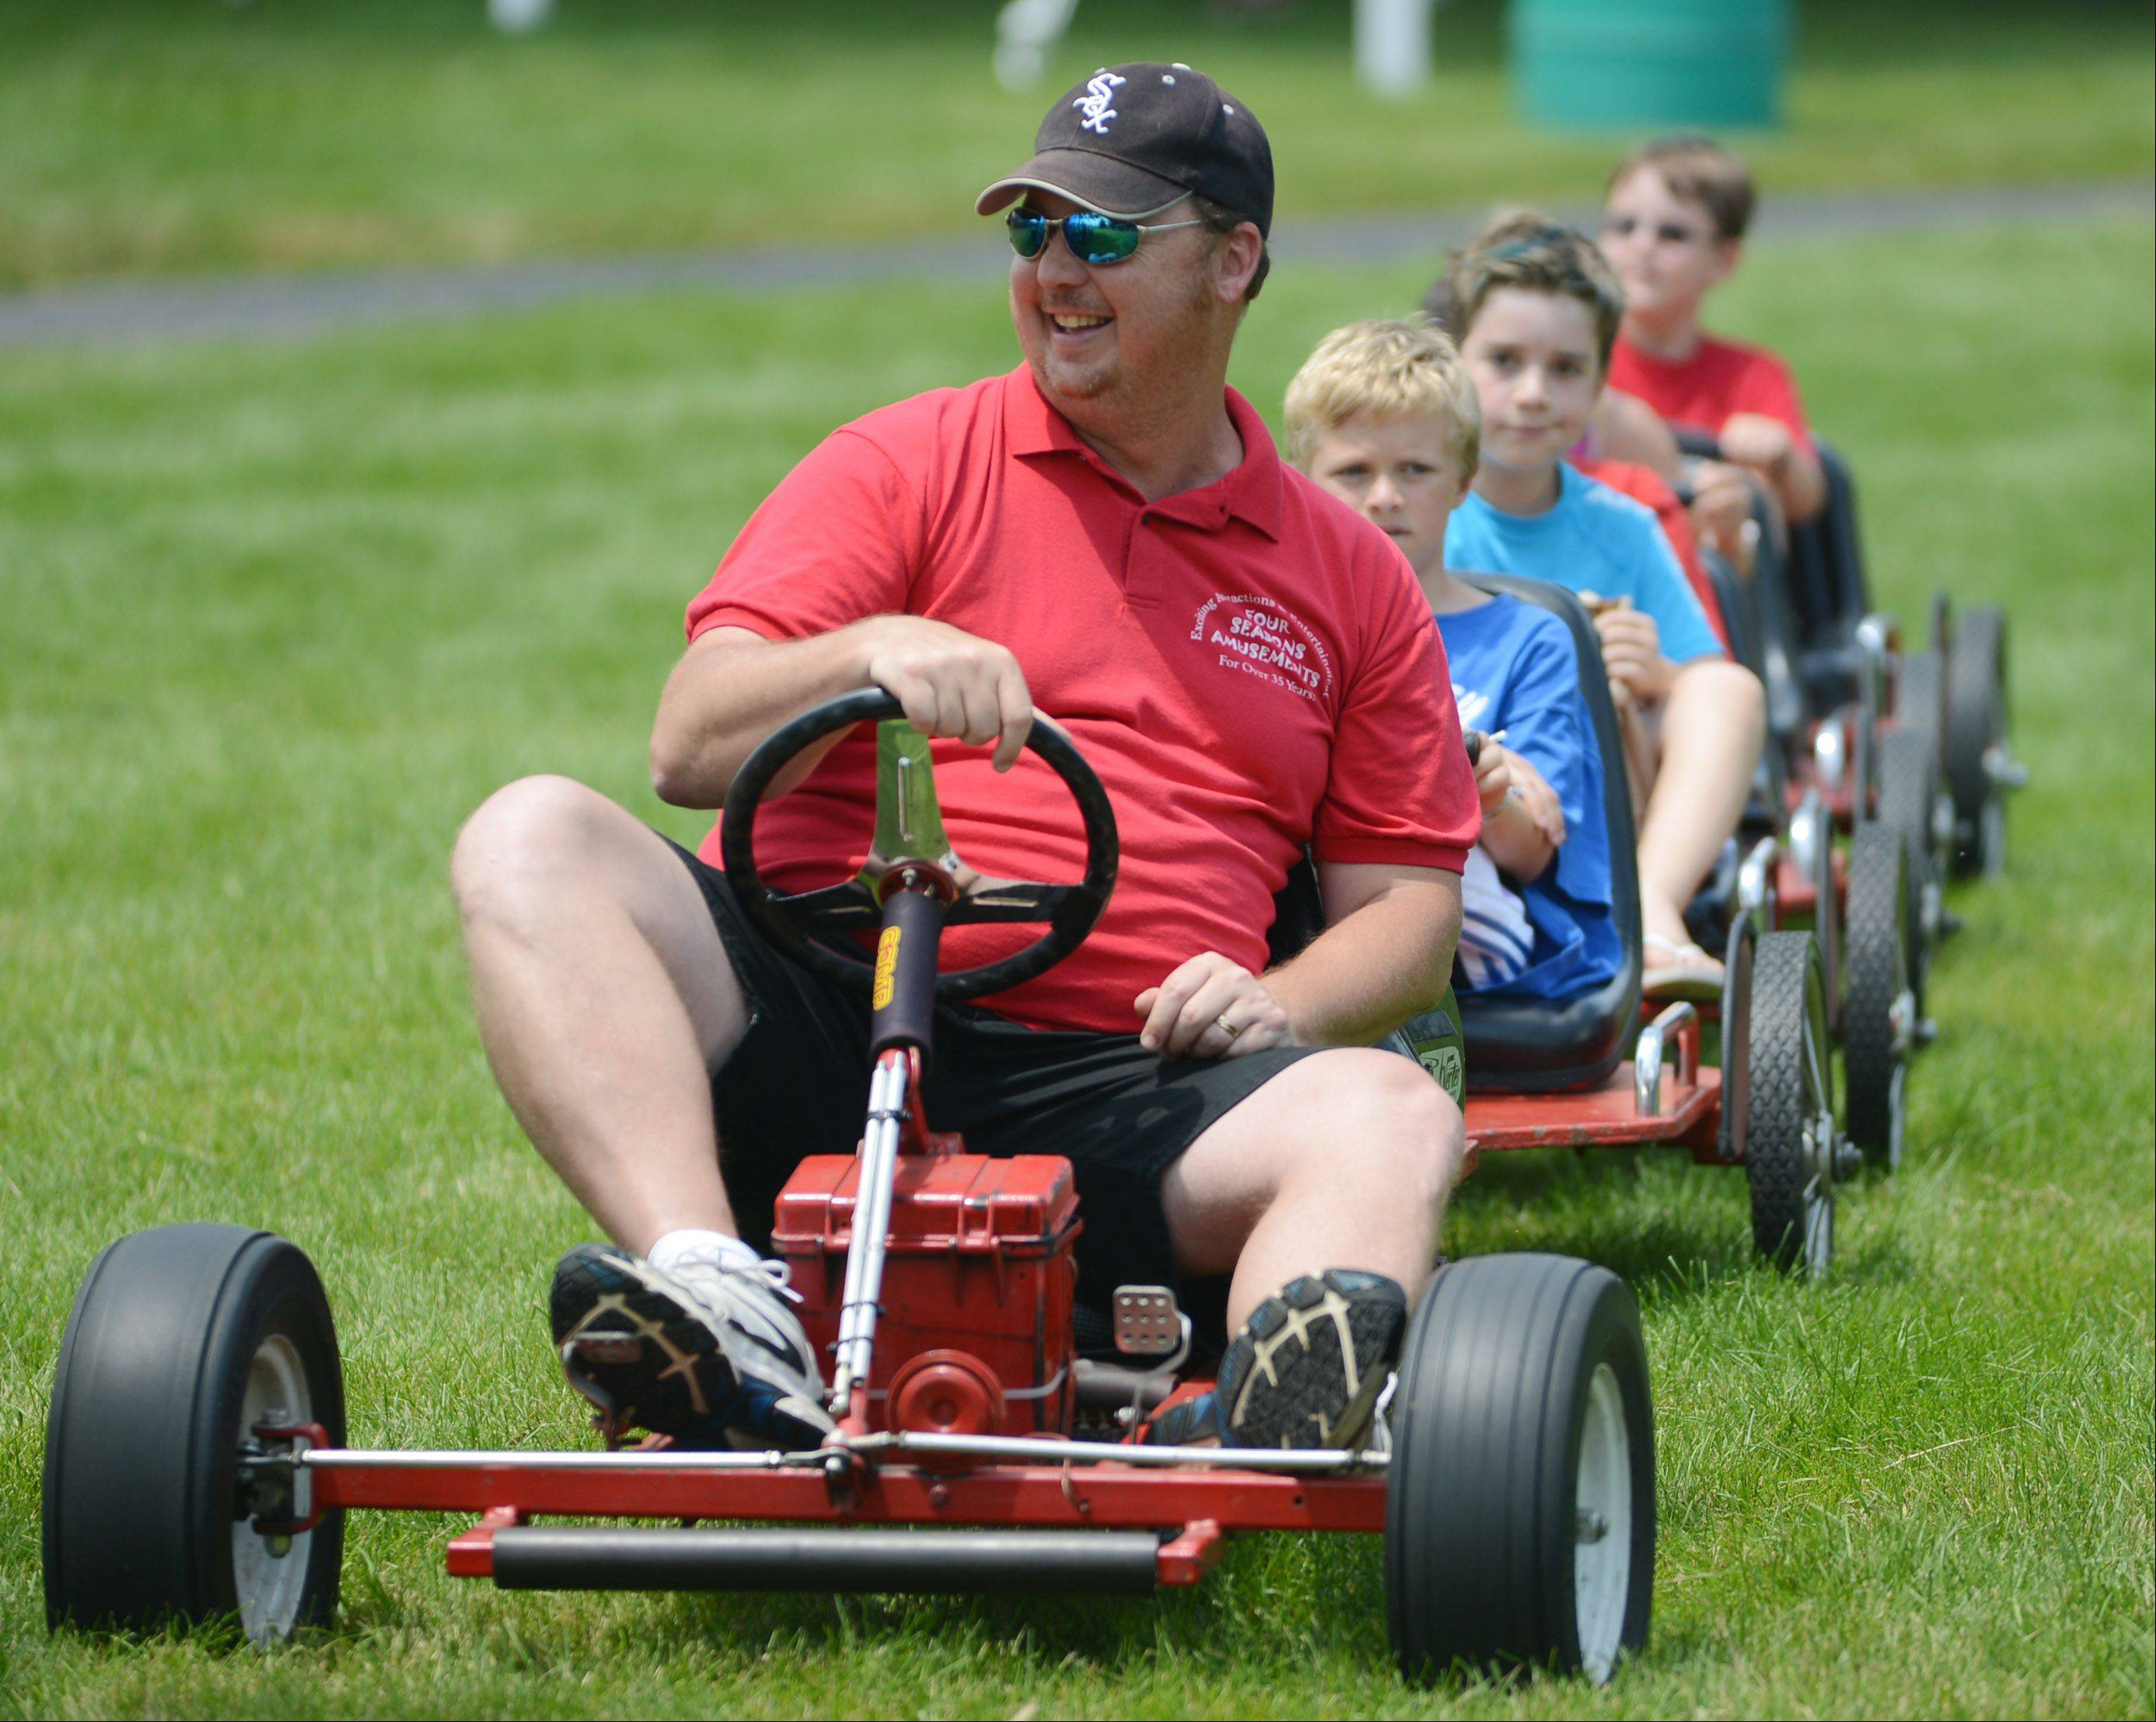 Erik Sundling of Four Seasons Amusements gives train rides to kids during Lake Zurich's Fourth of July celebration in Paulus Park on Thursday.